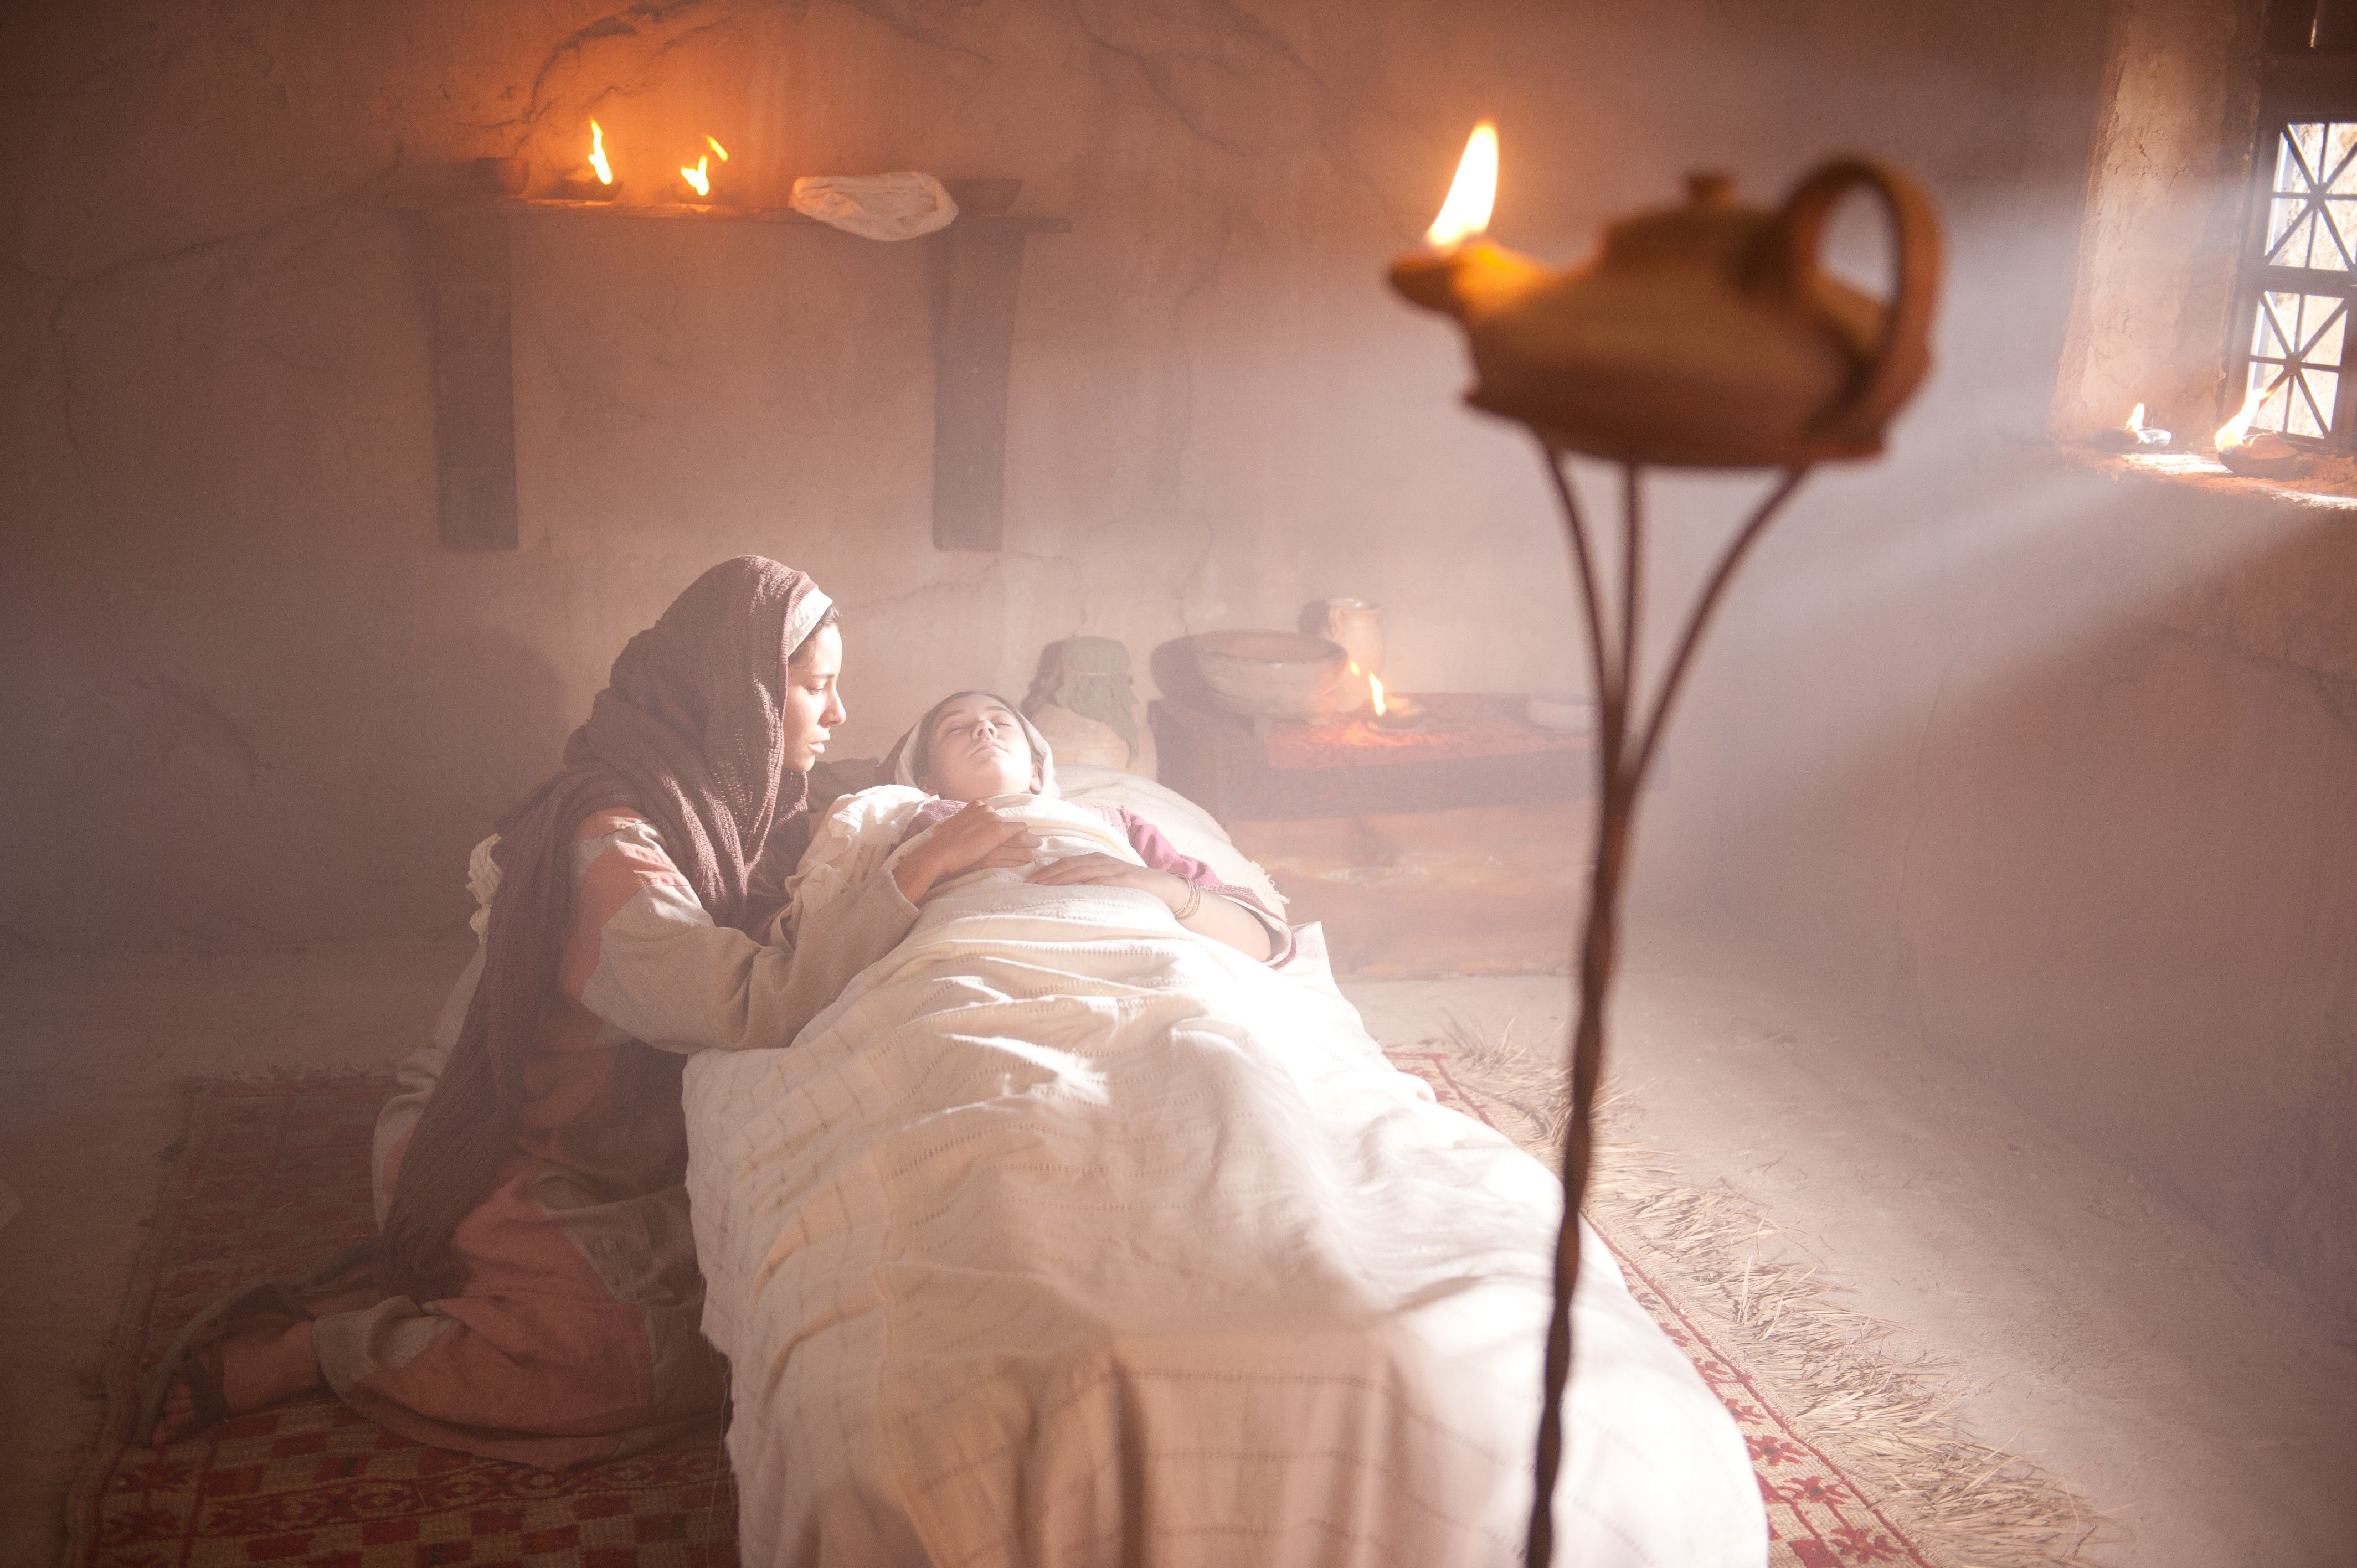 The daughter of Jairus lays as if she were dead.